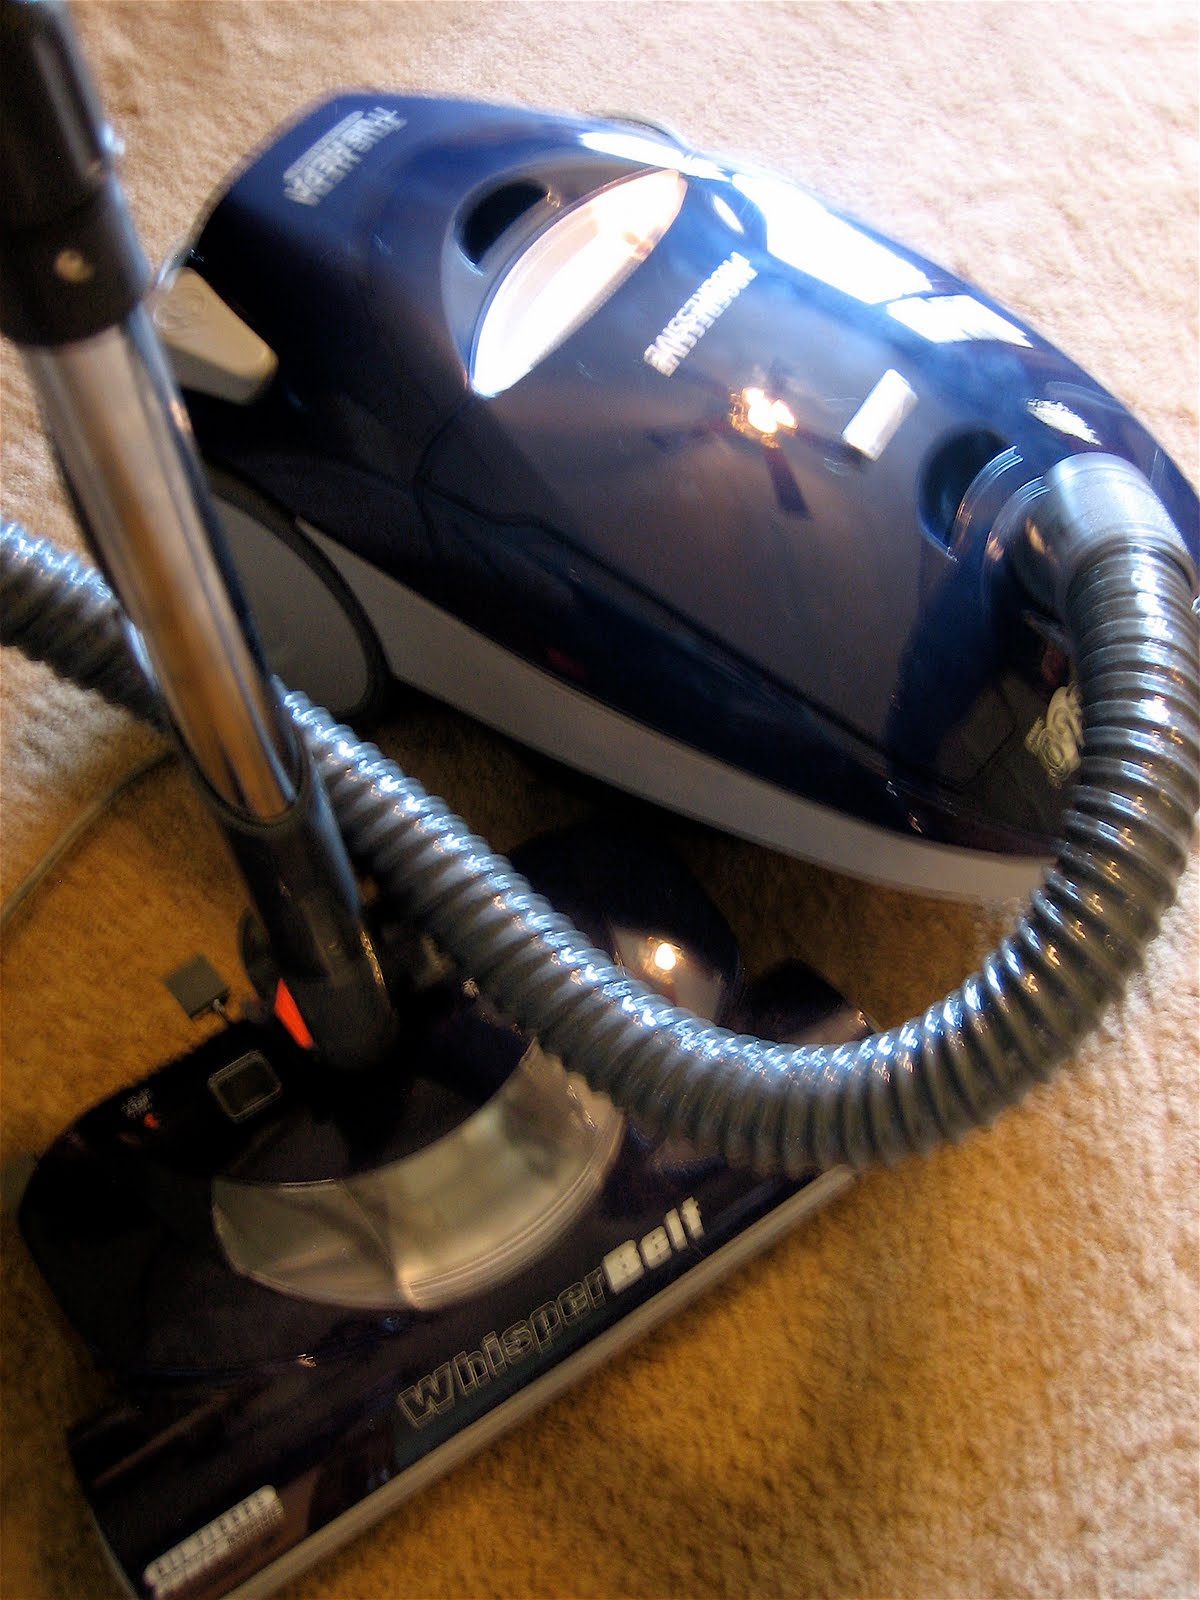 kenmore vacuum progressive. a vacuum because it\u0027s lot of money for us and i don\u0027t trust other people\u0027s opinions. since i\u0027ve loved ours so much, just wanted to spread the news! kenmore progressive